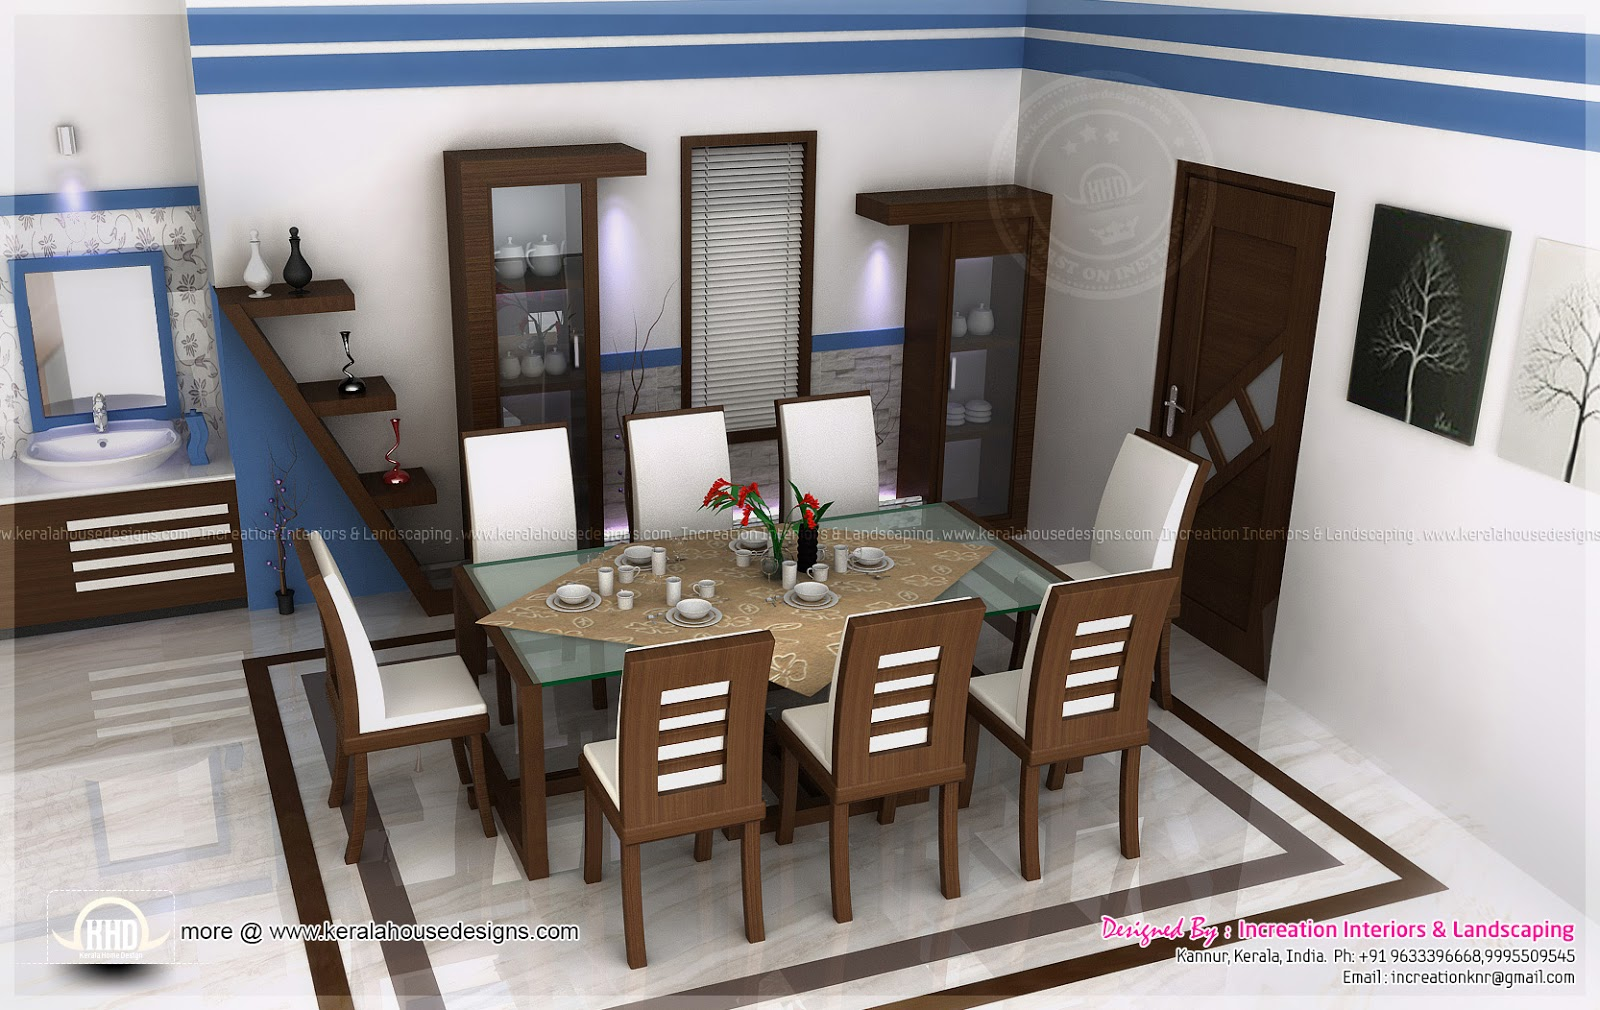 House interior ideas in 3d rendering kerala home design for House interior design ideas for small house